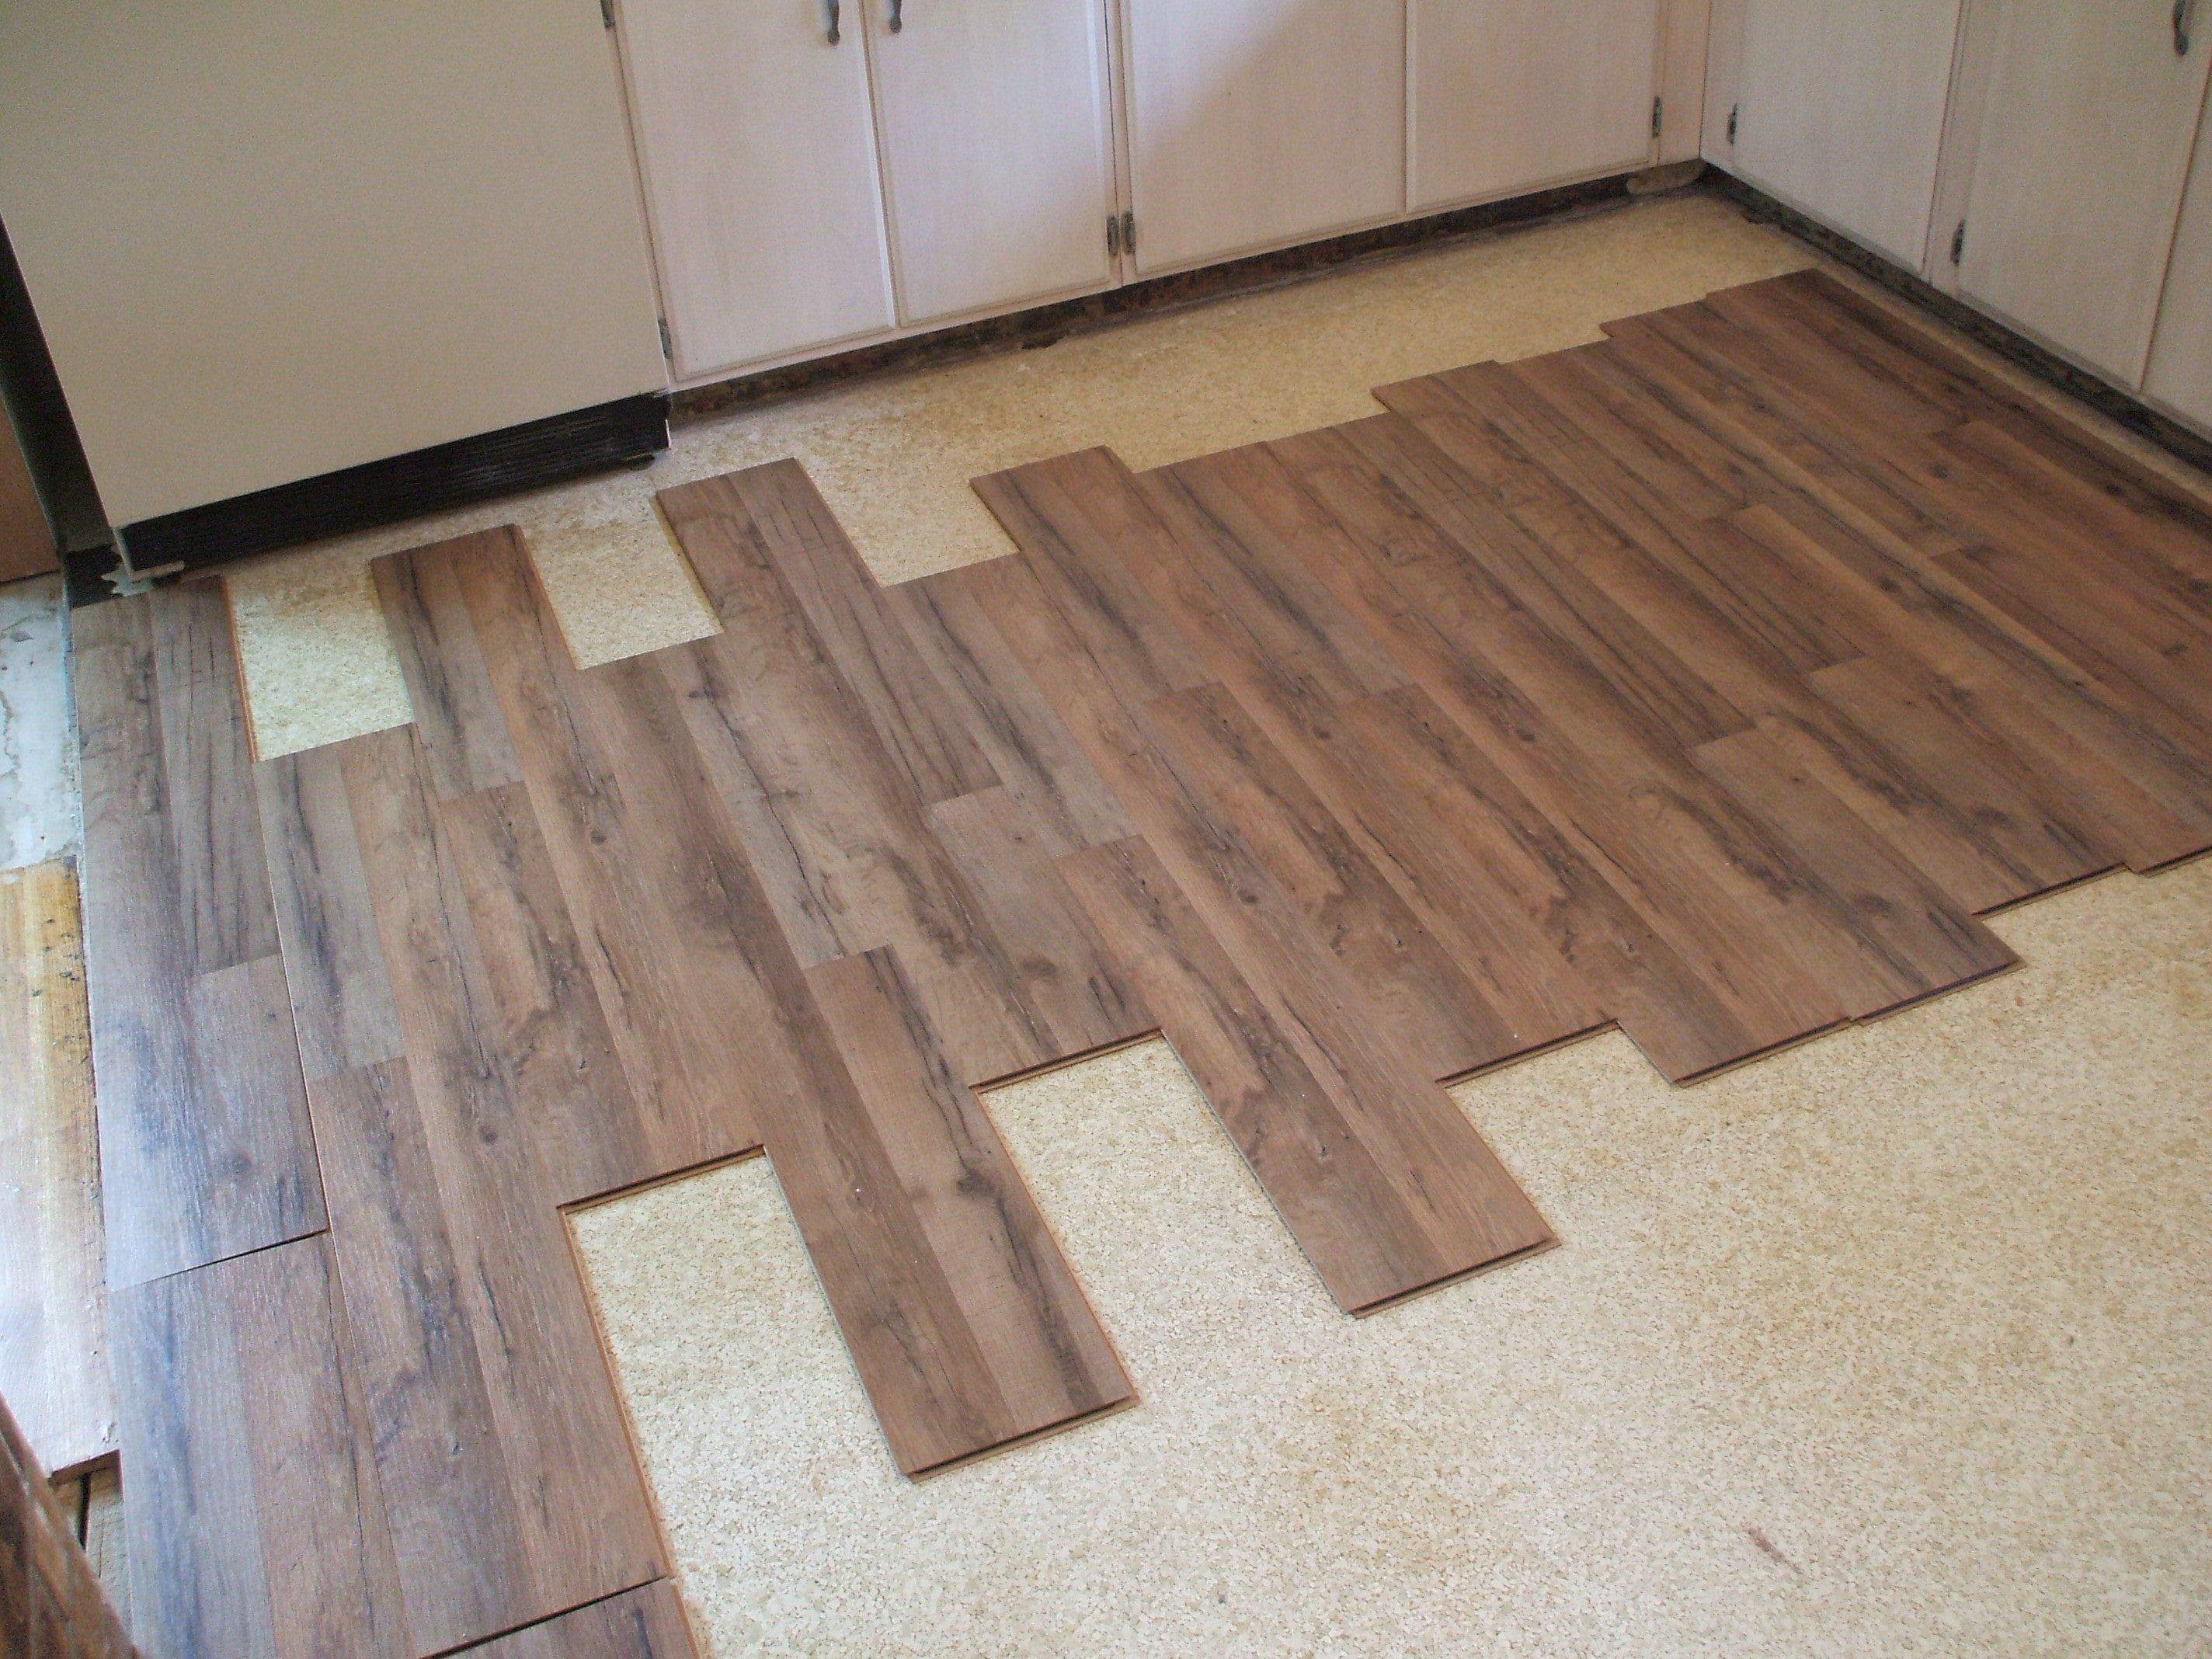 Vinyl Tiles For Kitchen Floor How To Install Vinyl Tile Flooring All About Flooring Designs